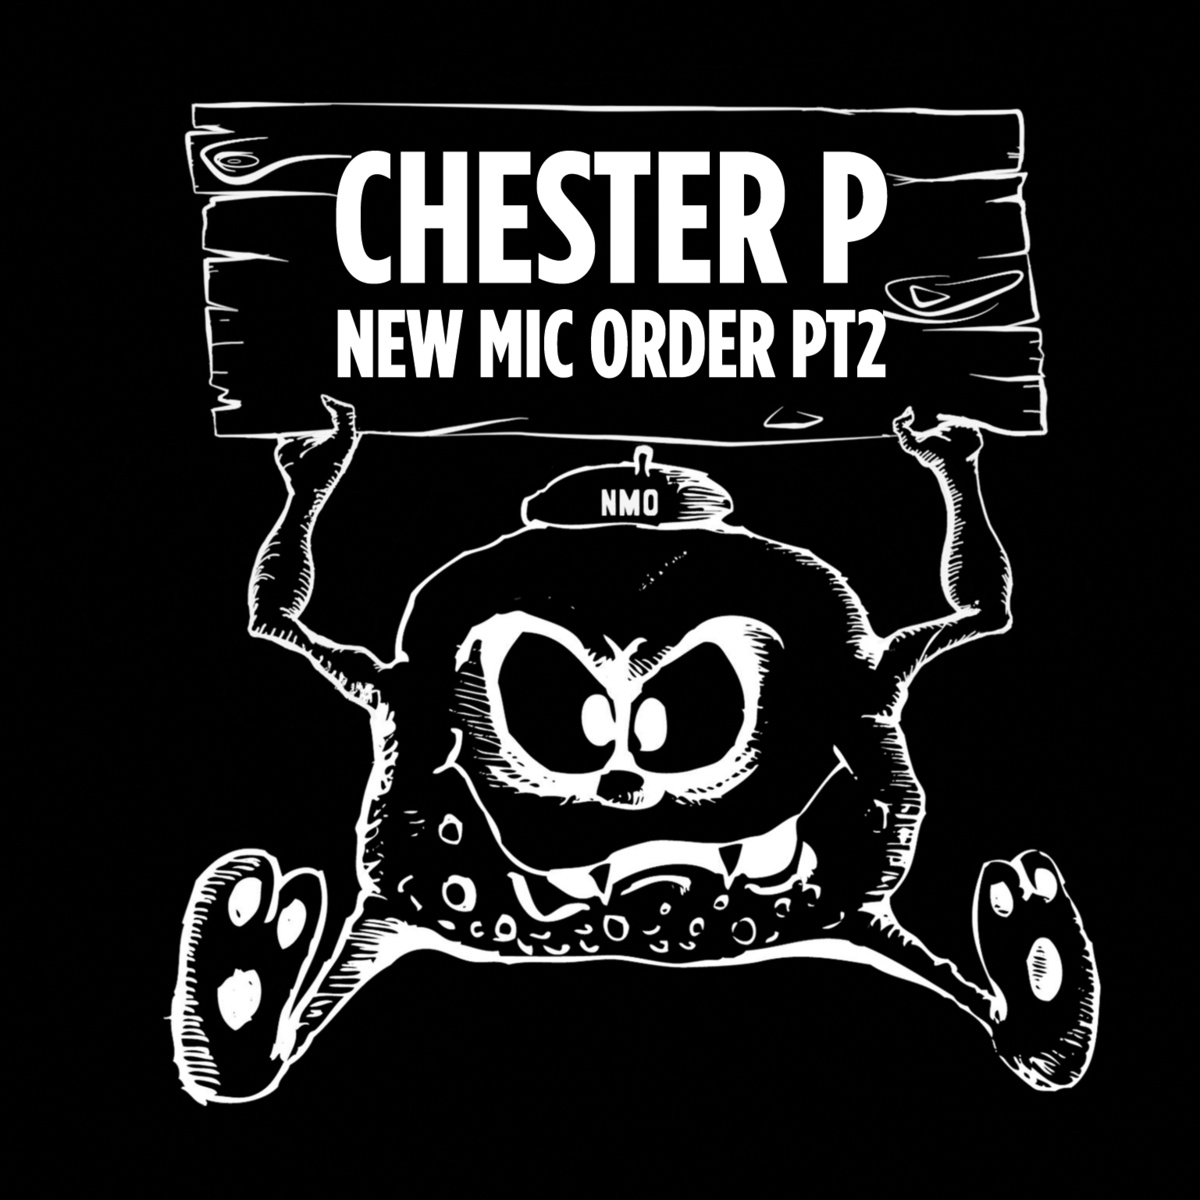 Chester P – Little Man